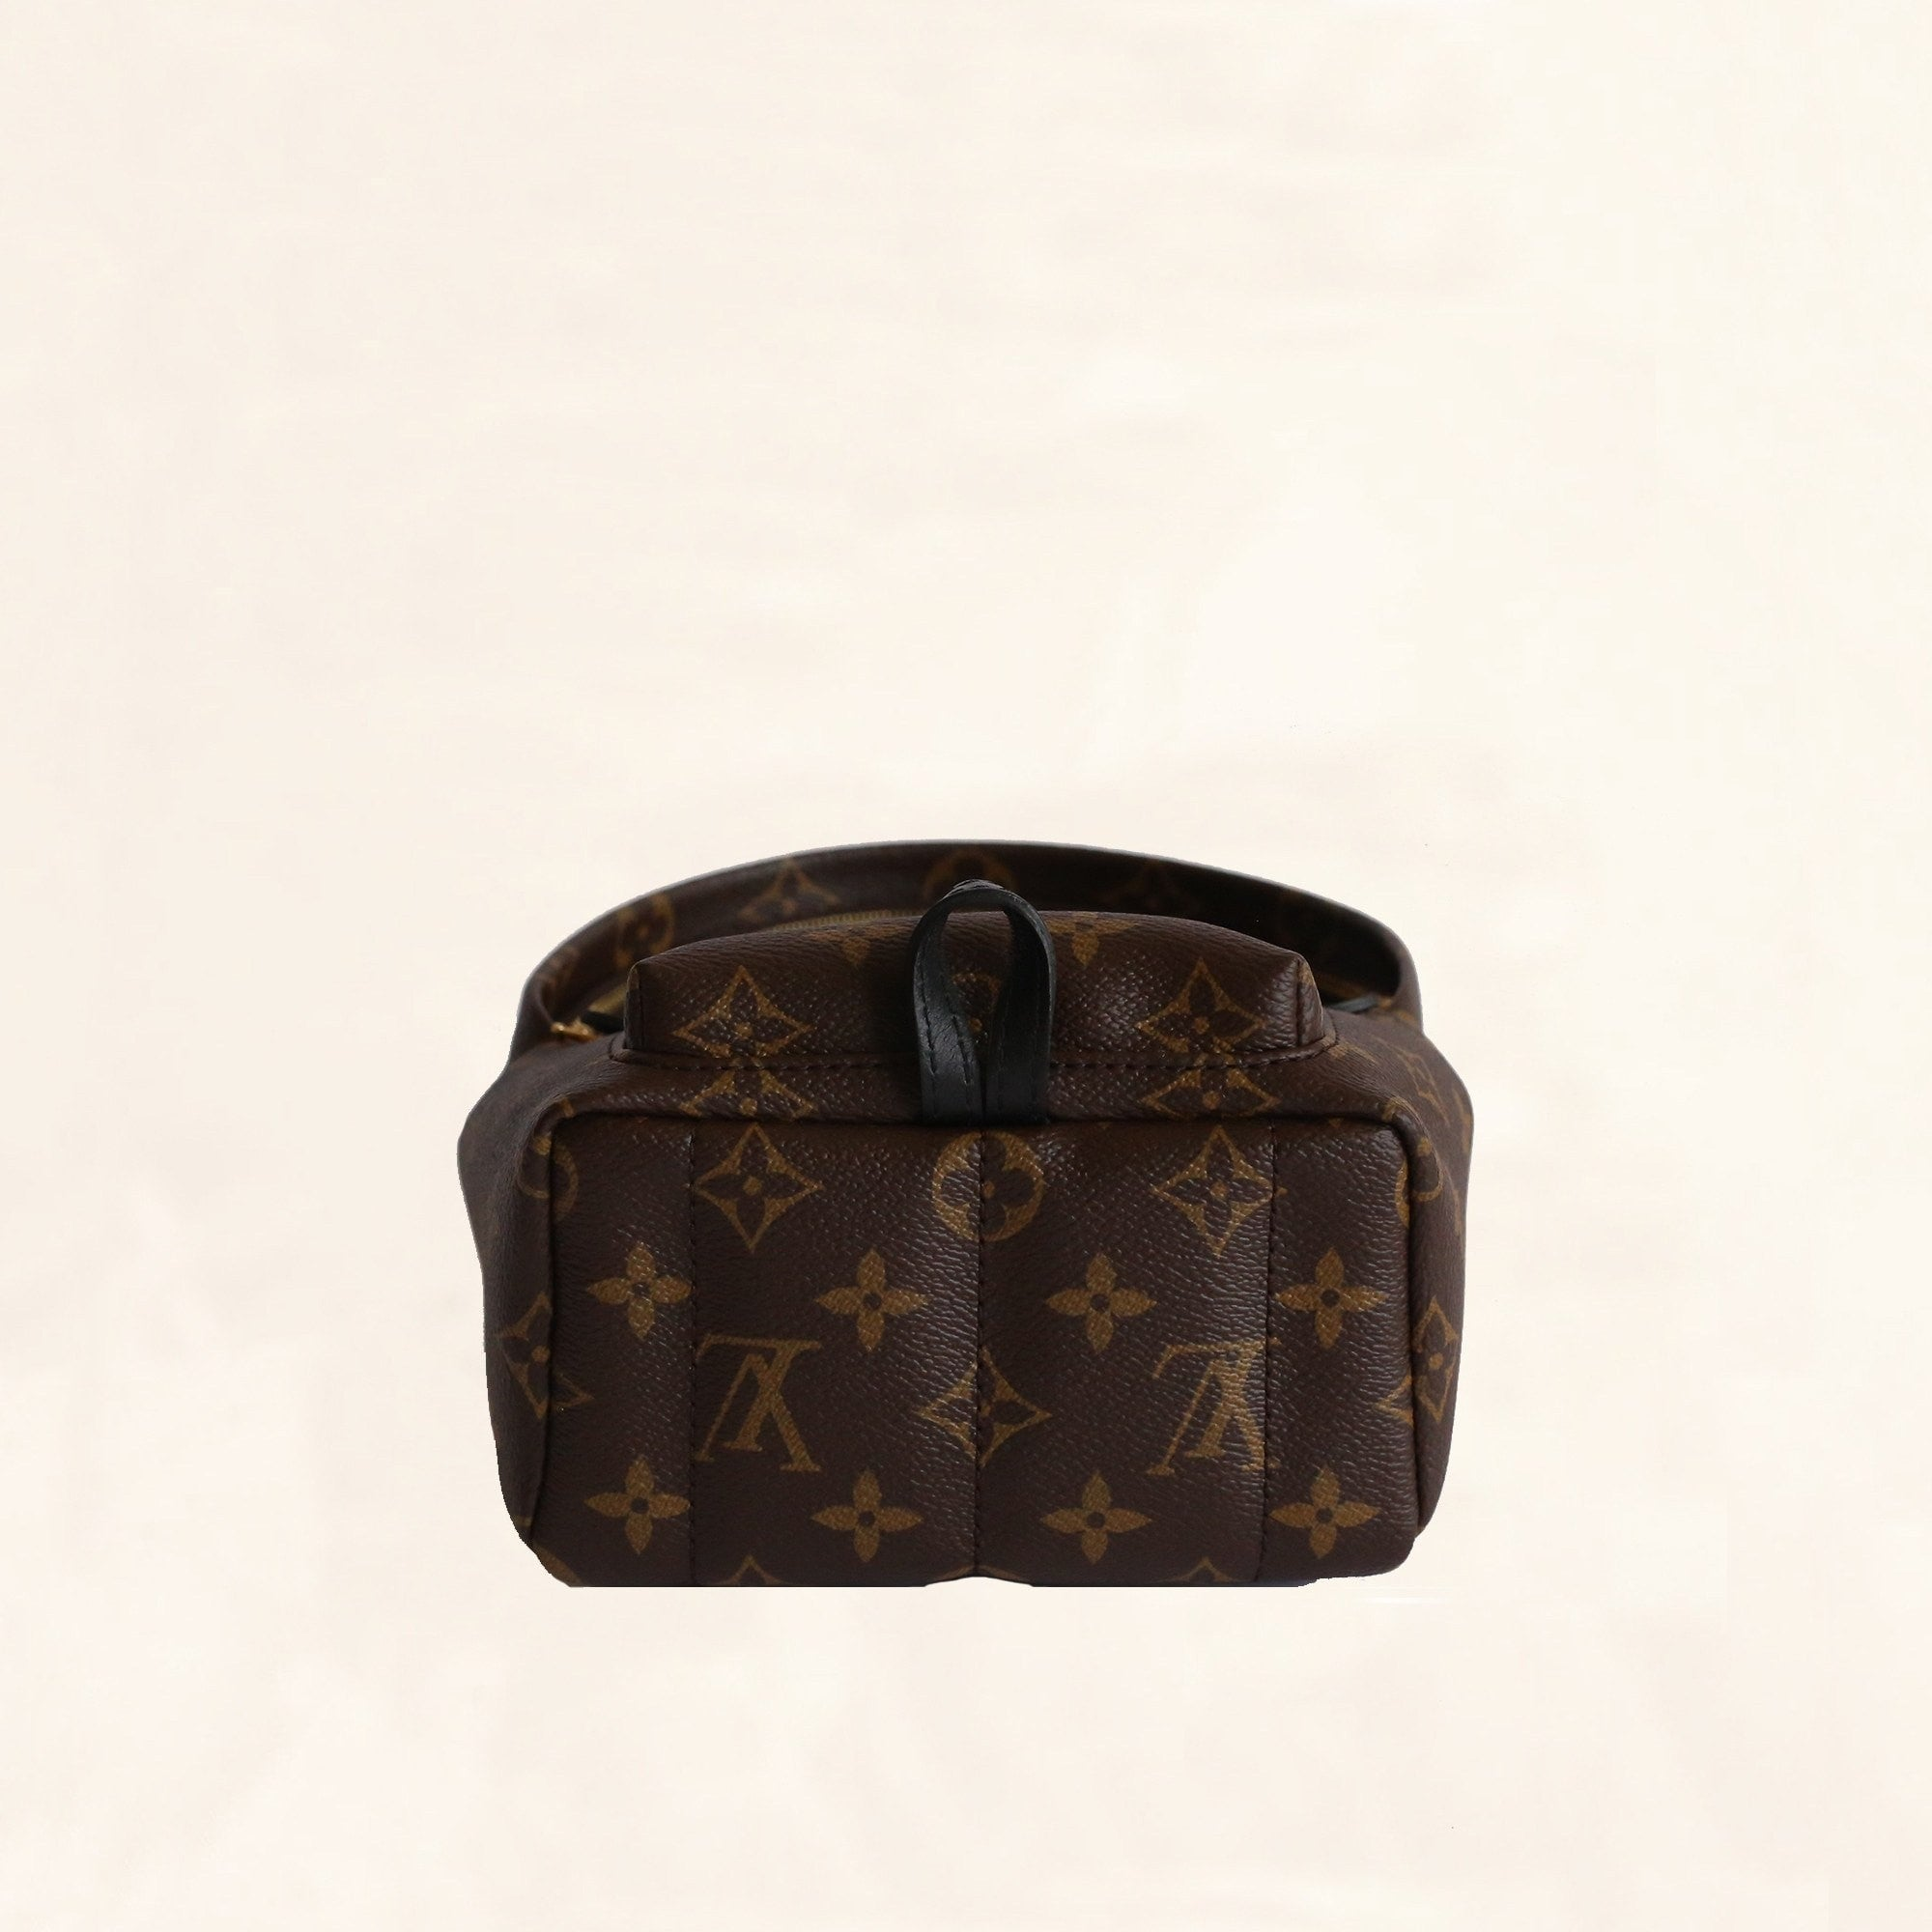 5c486dd4478d Louis Vuitton Palm Springs Backpack Mini M41562 - The-Collectory